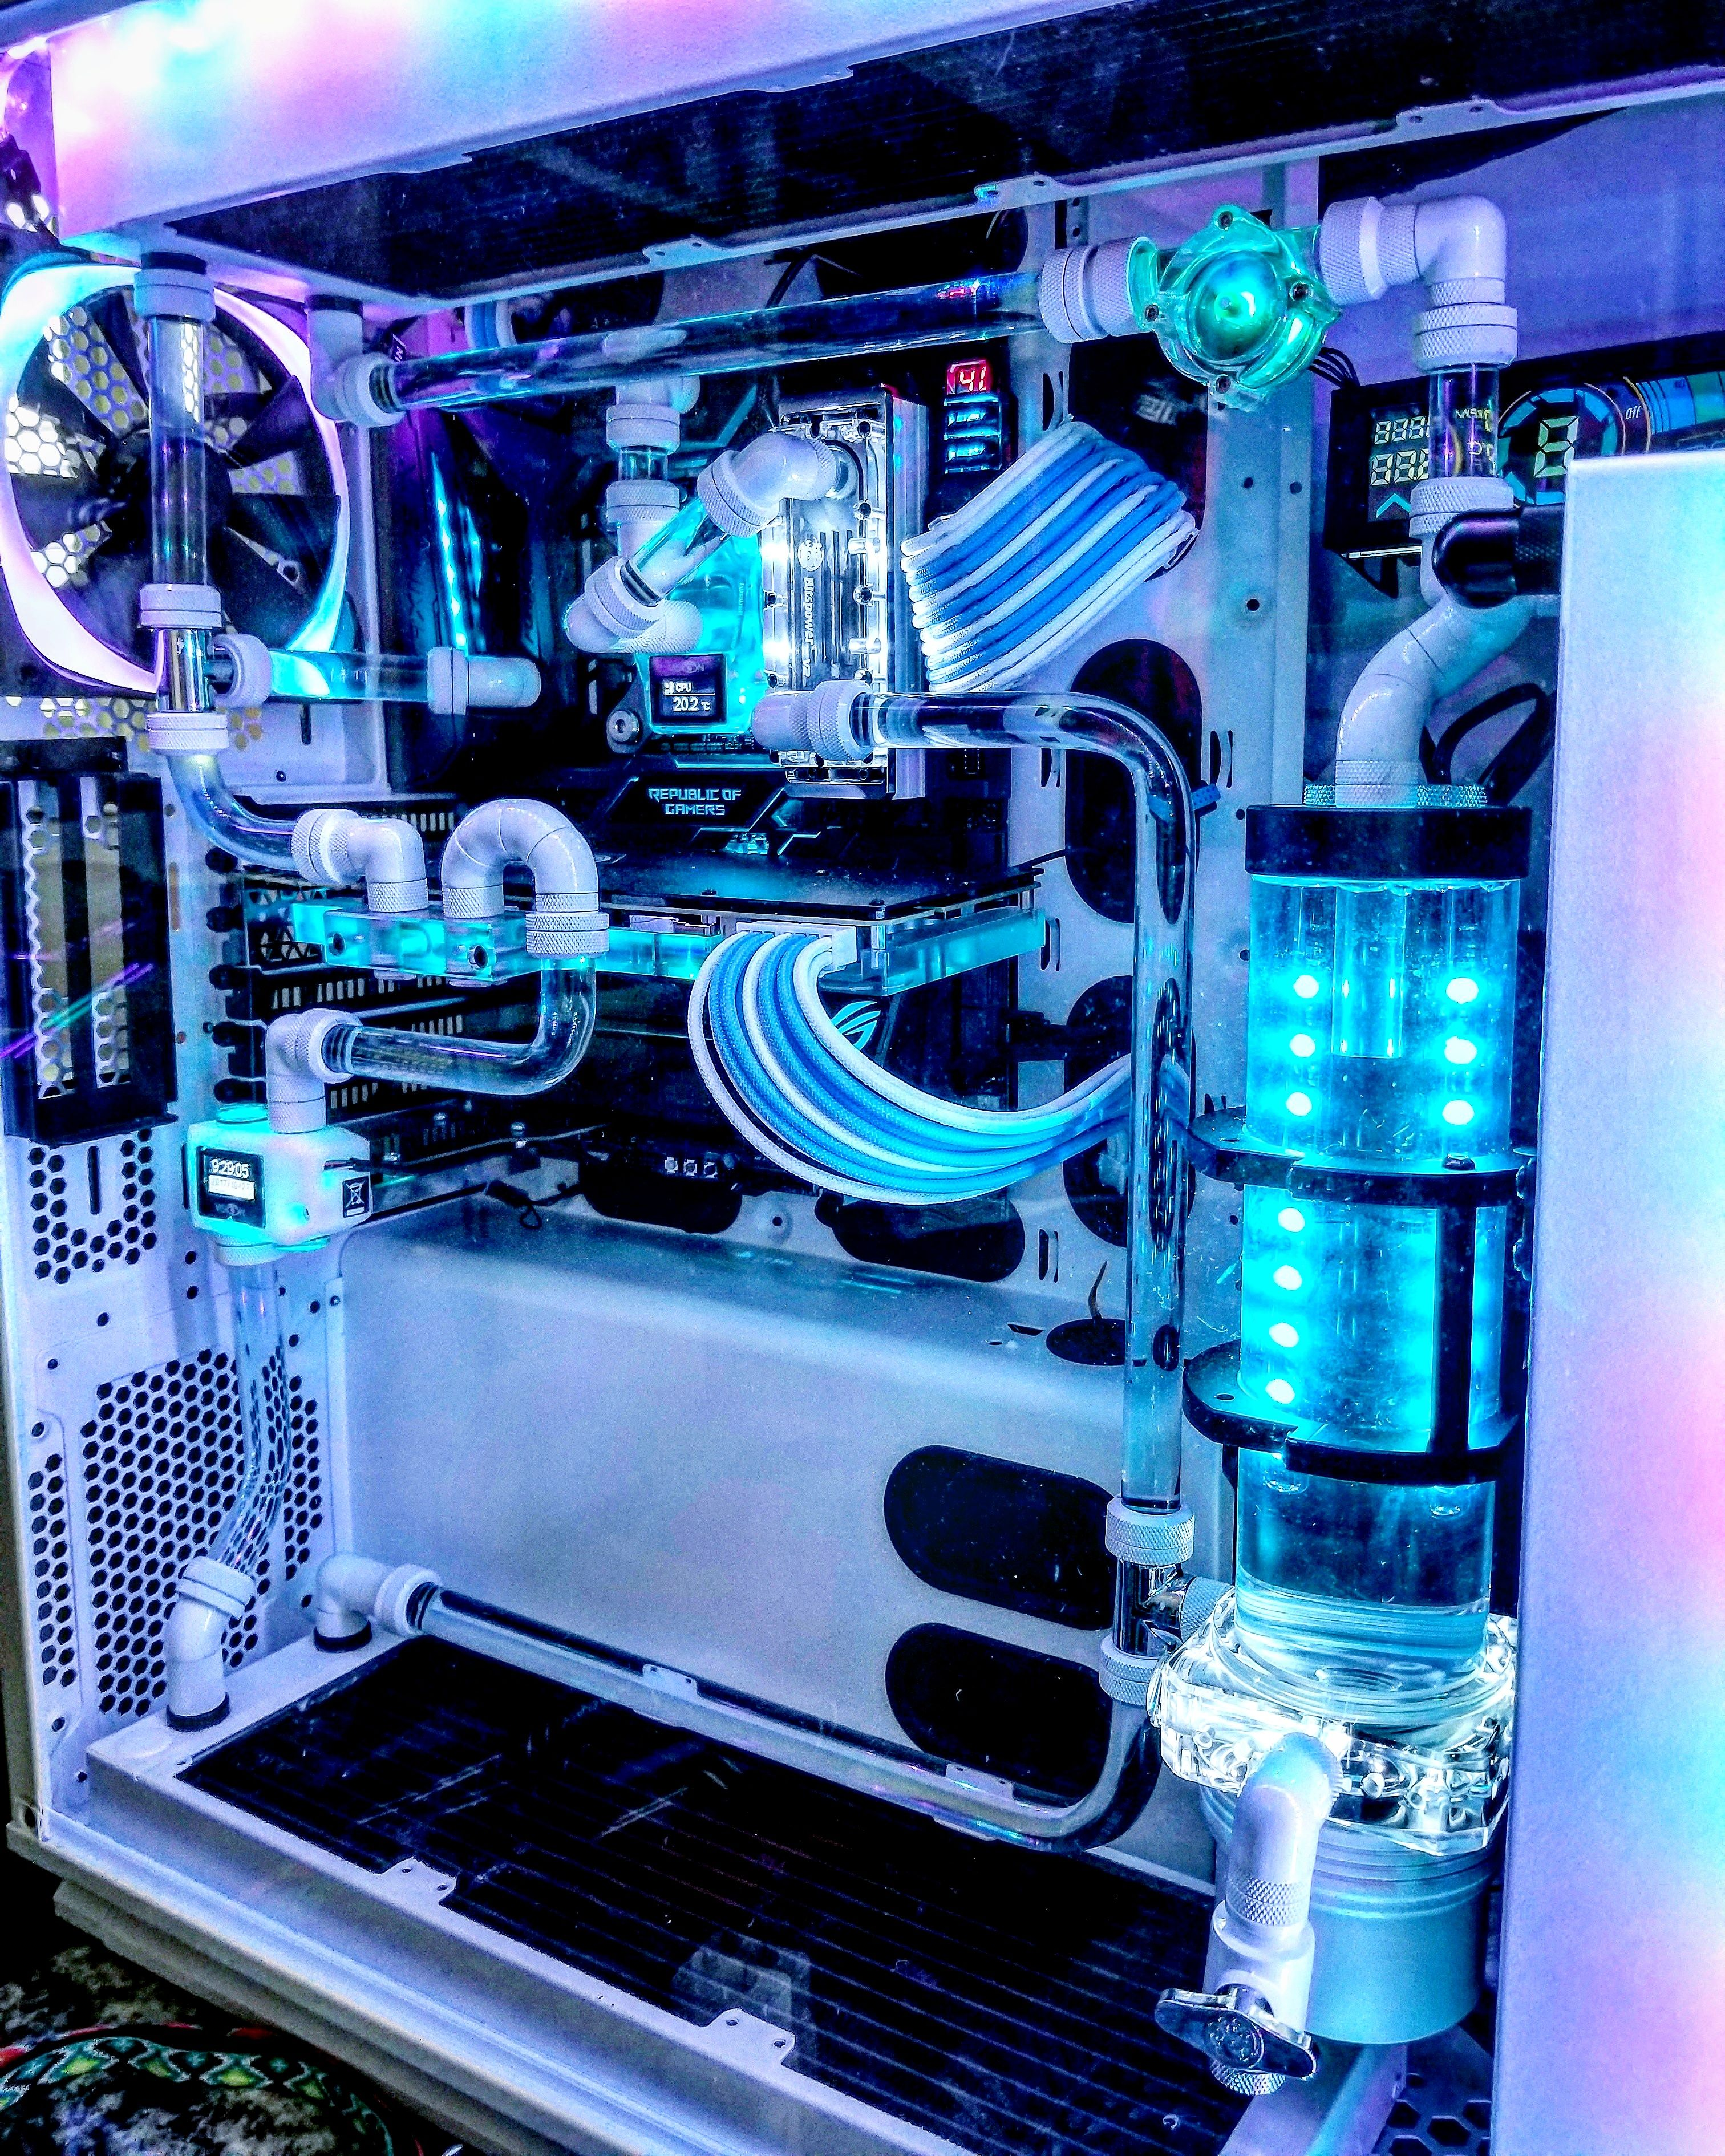 Pin by TheTVTaster on PC Builds in 2019 | Pc gaming setup, Gaming pc